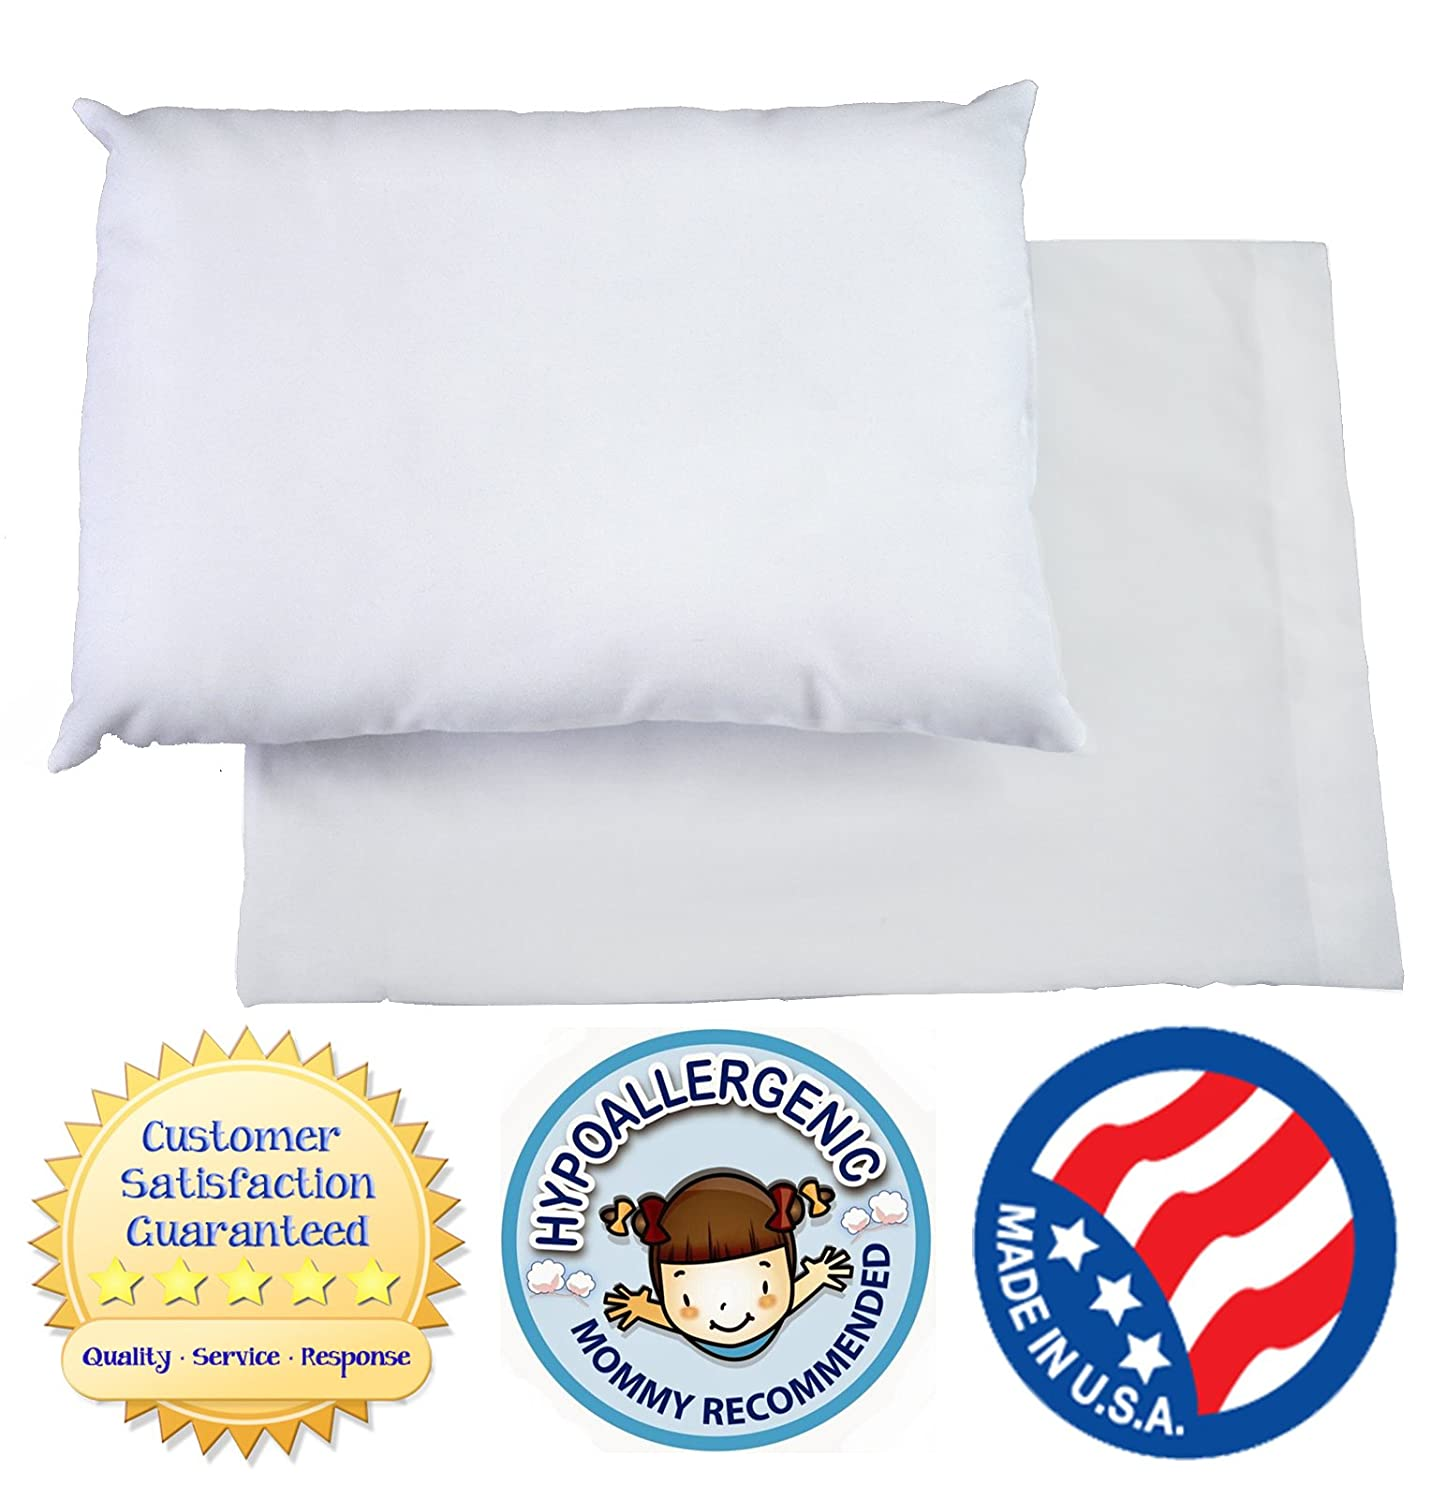 mattress foam down pillow best top topper target memory of toddler